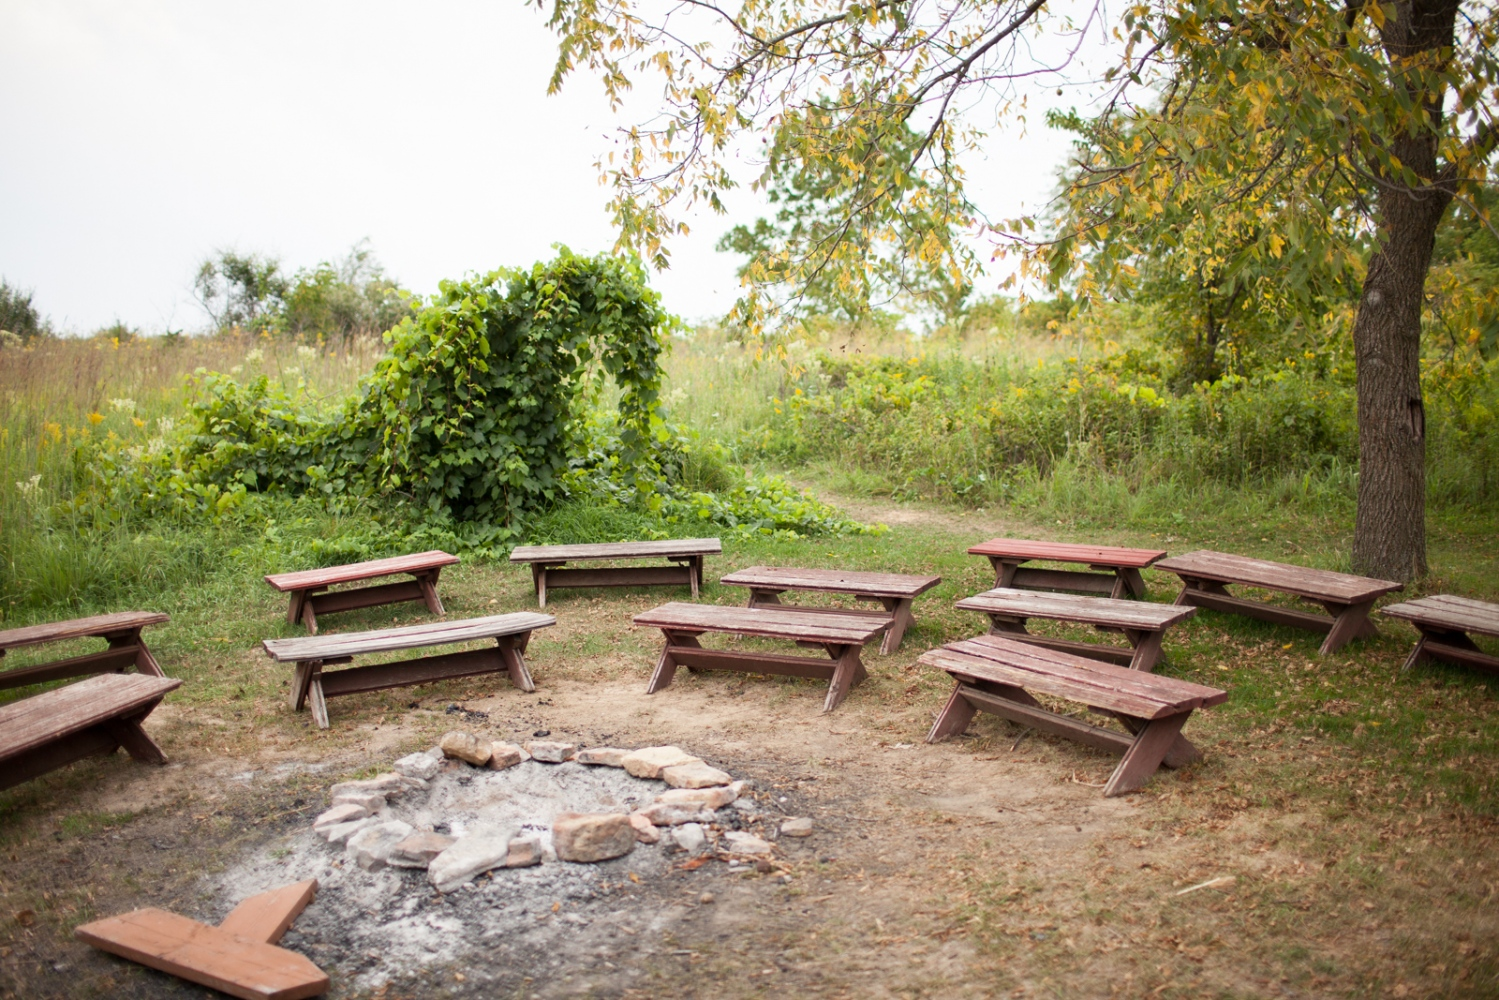 The bonfire cirlcle where children and their familes will participate in typical evening camp activities like singing and roasting marshmallows.